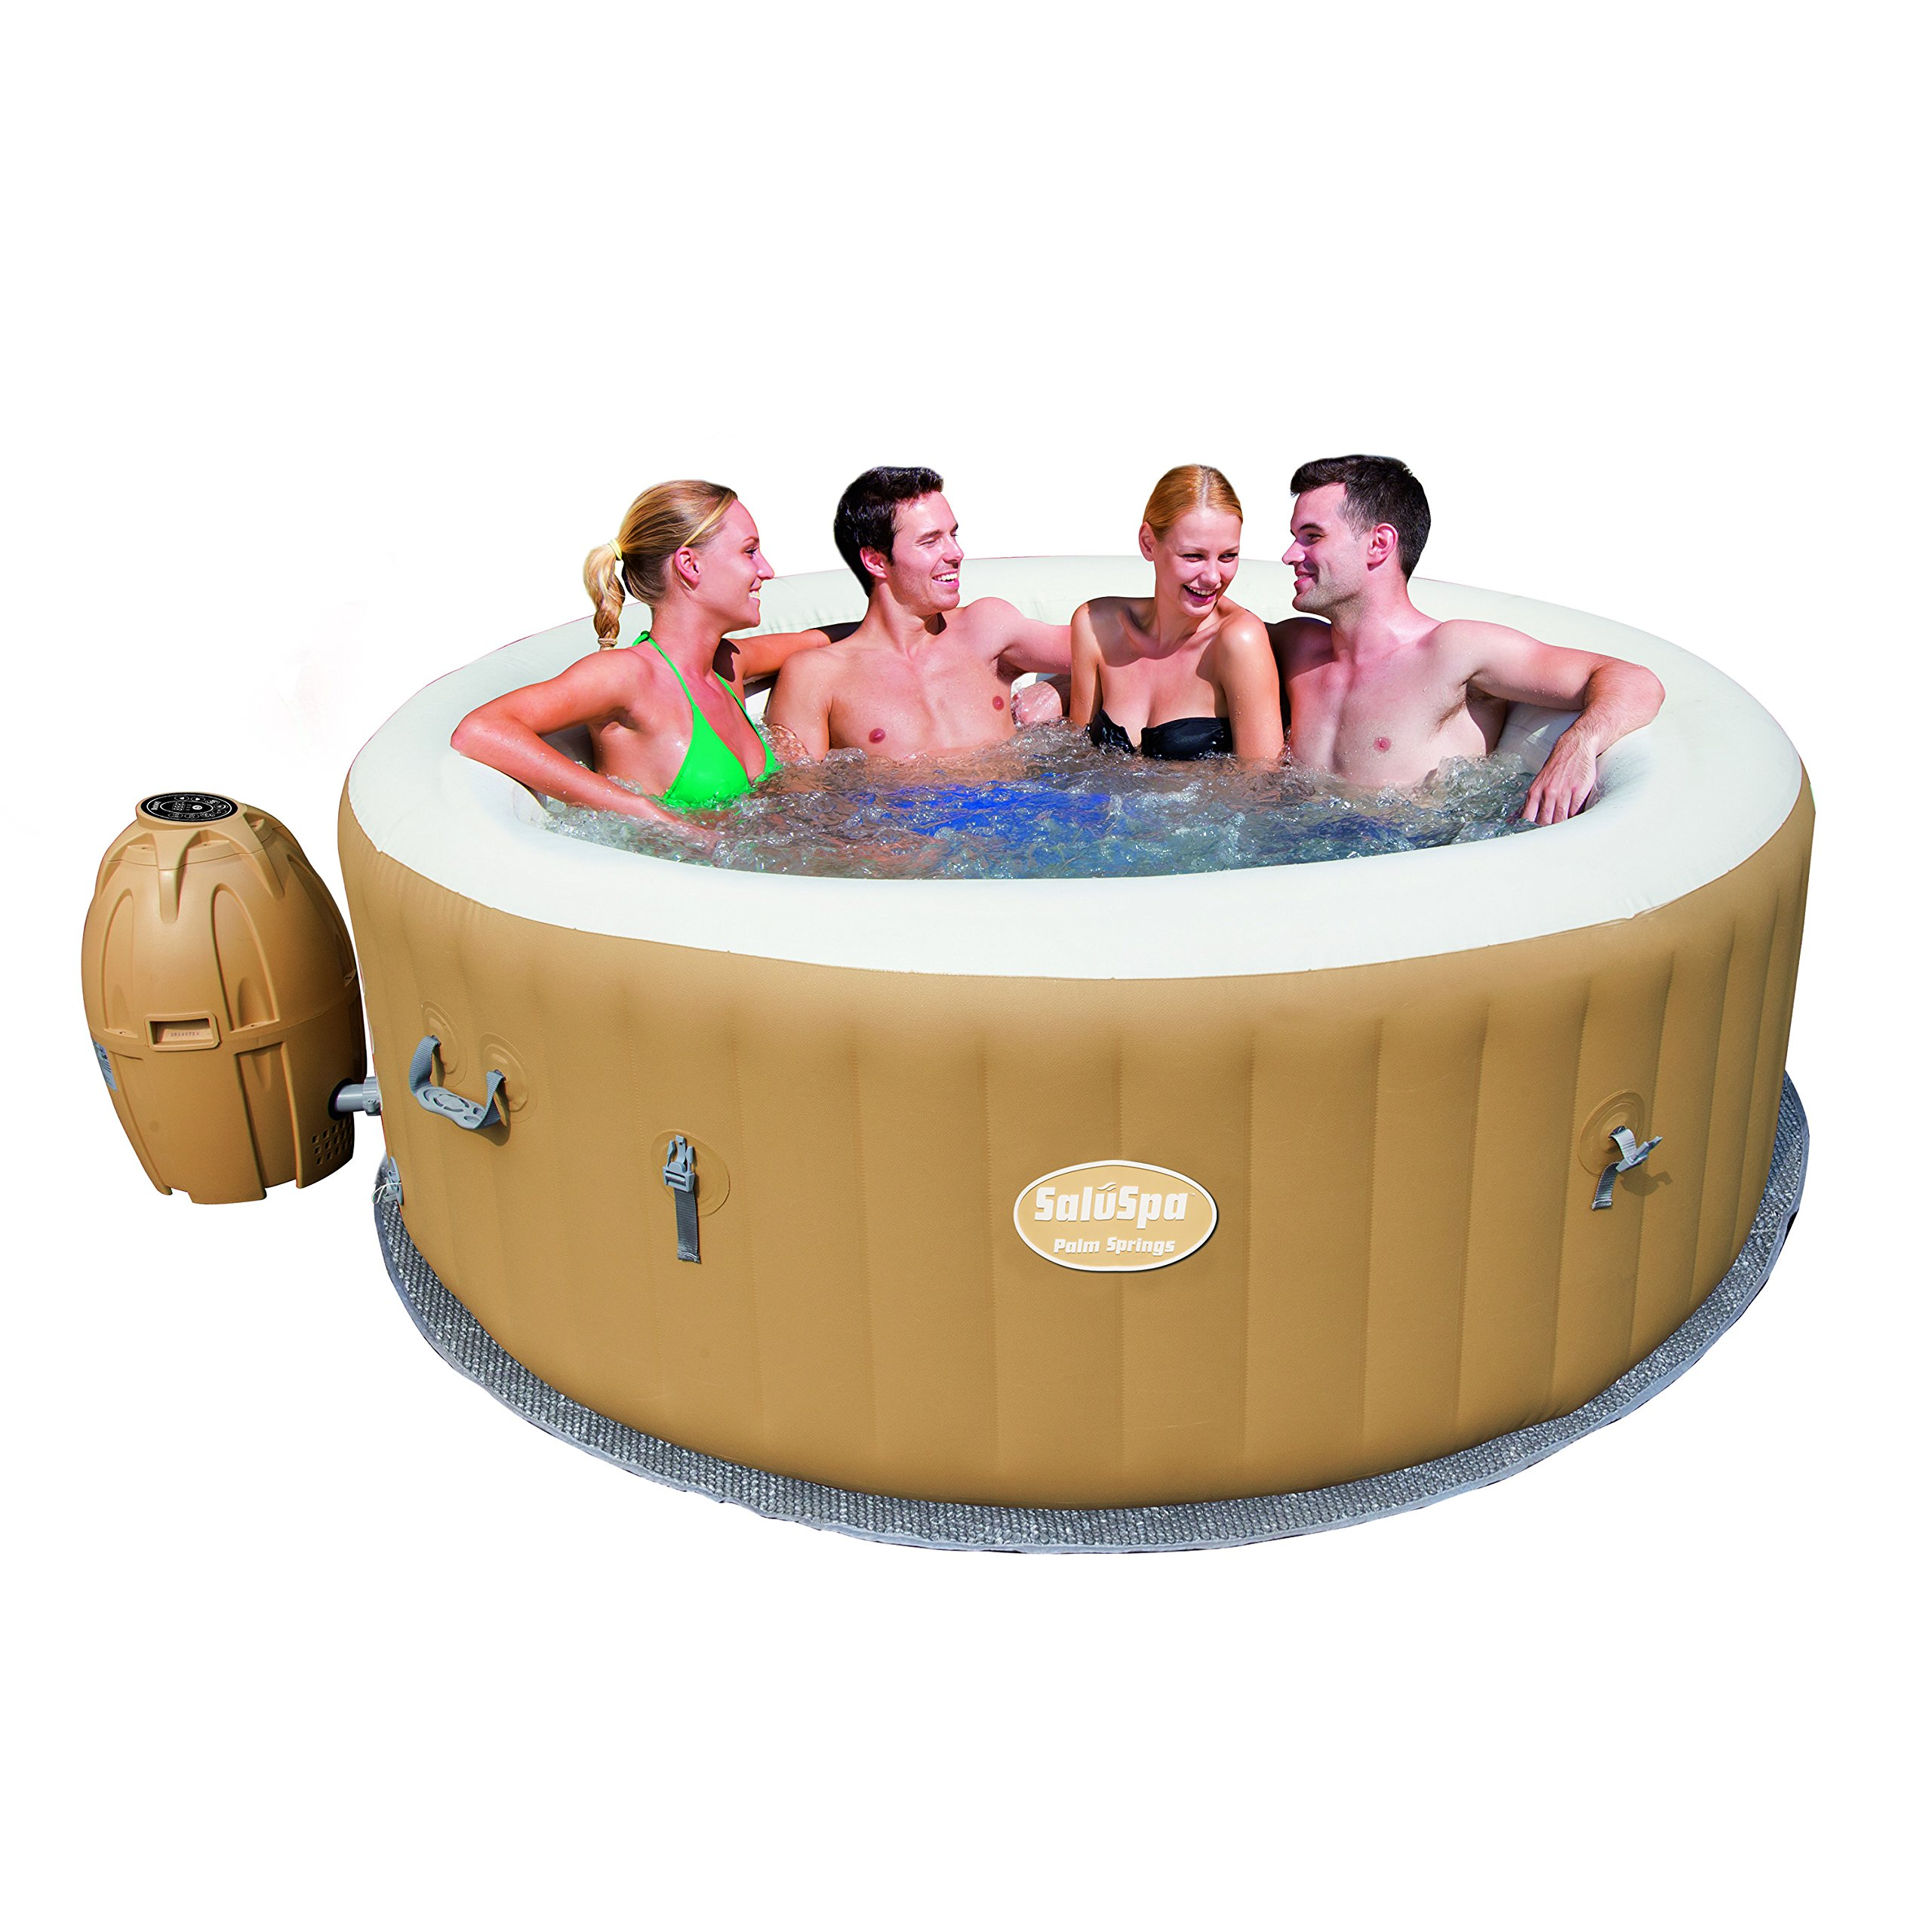 Lay-Z-Spa Palm Springs Air Jet Portable Inflatable Hot Tub Spa - For ...